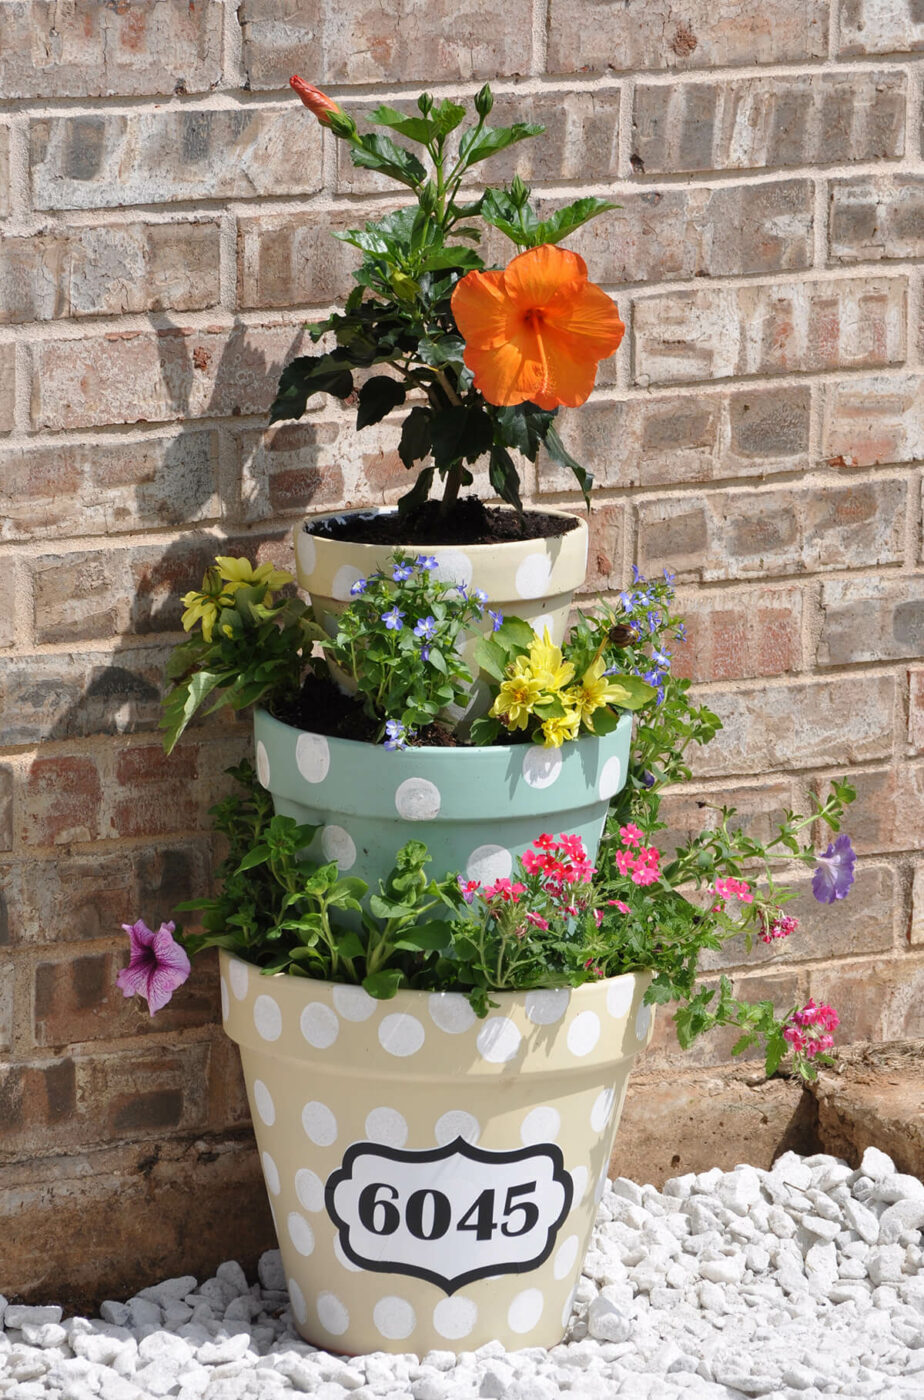 Tiered Flower Pot House Number Decoration